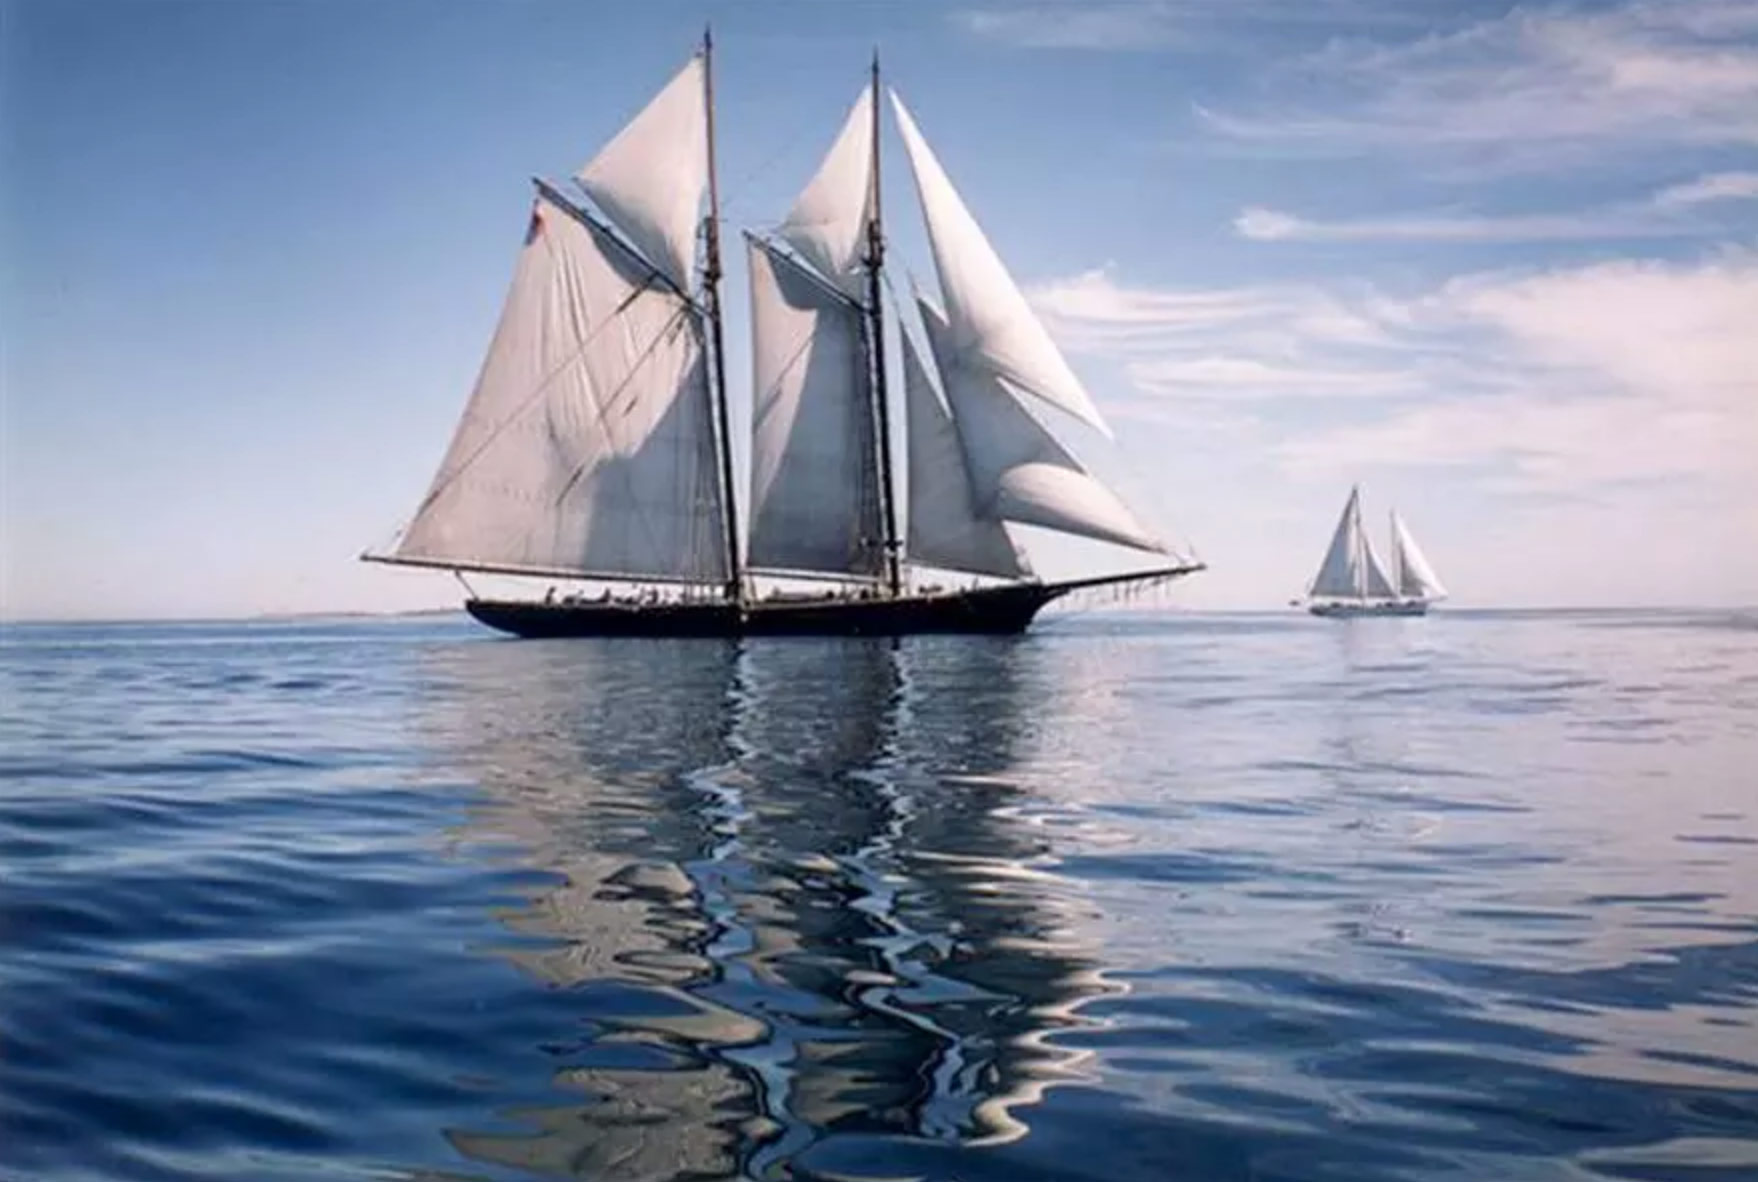 Ernestina-Morrissey Courtesy Susan S. Bank Boston Globe